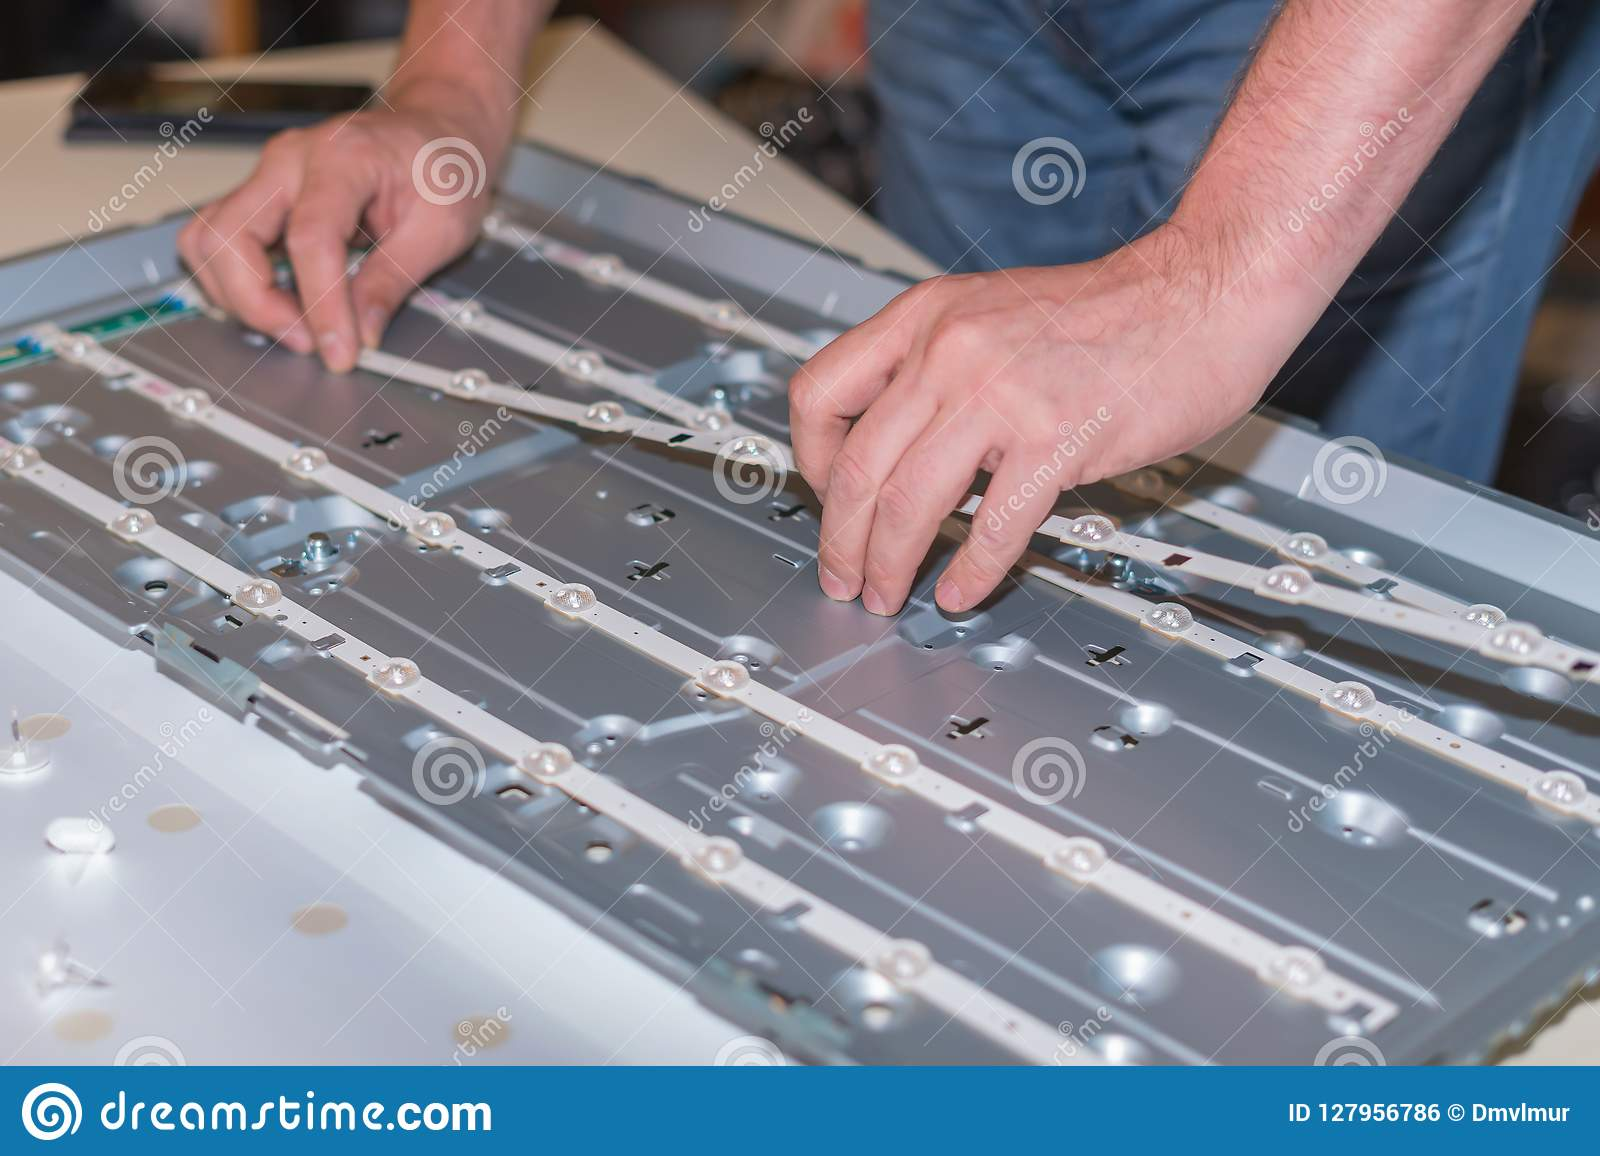 Repair Modetn TV, LED Backlight Replacement In LCD Panel Stock Photo